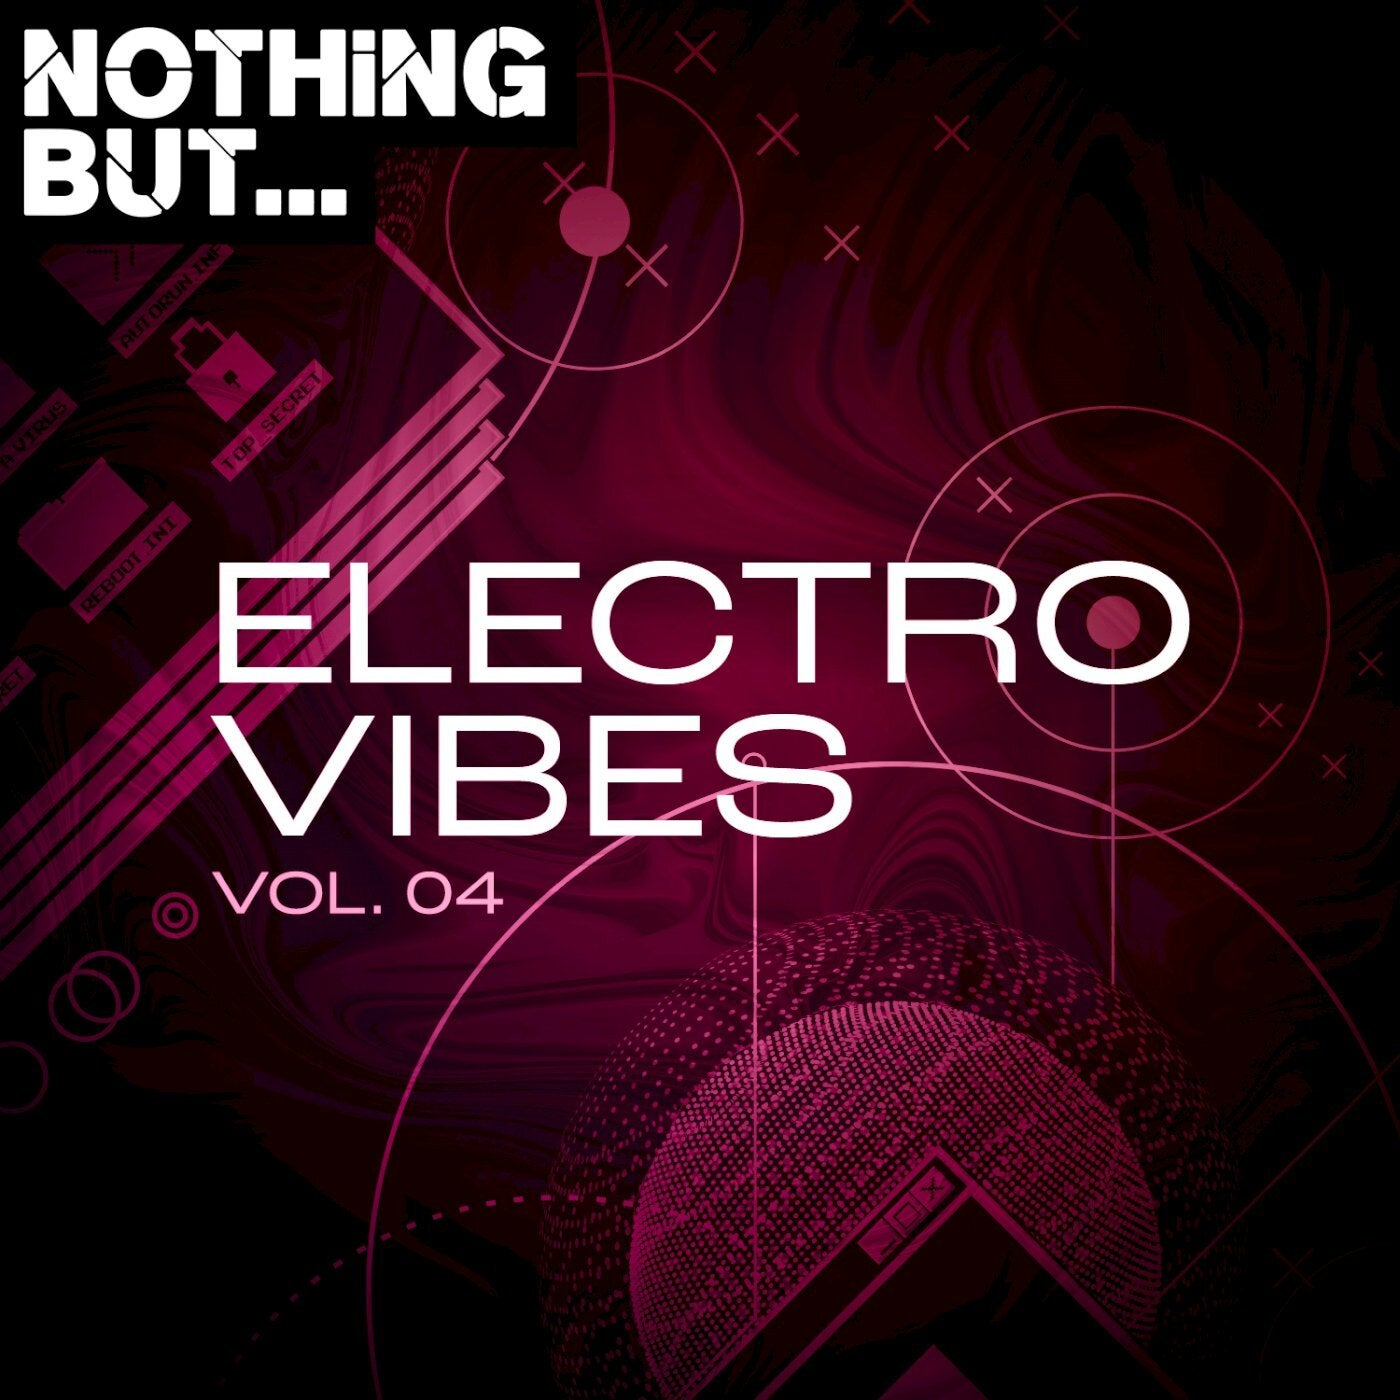 Various Performers - Nothing But... Electro Vibes, Vol. 04 (2021)